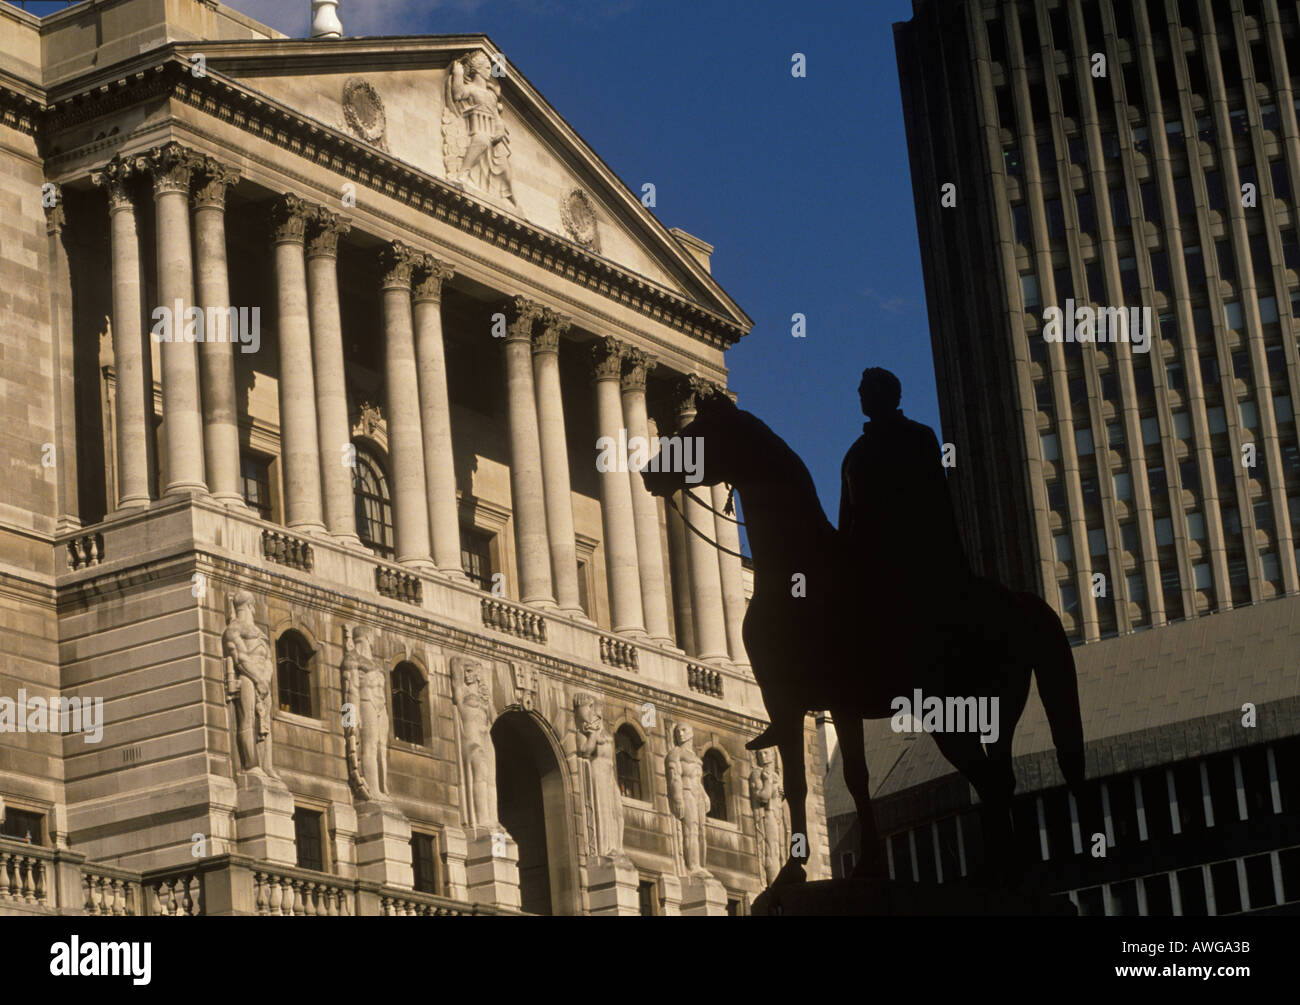 Bank of England The City of London Britain UK.  Statue of the Duke of Wellington. HOMER SYKES - Stock Image